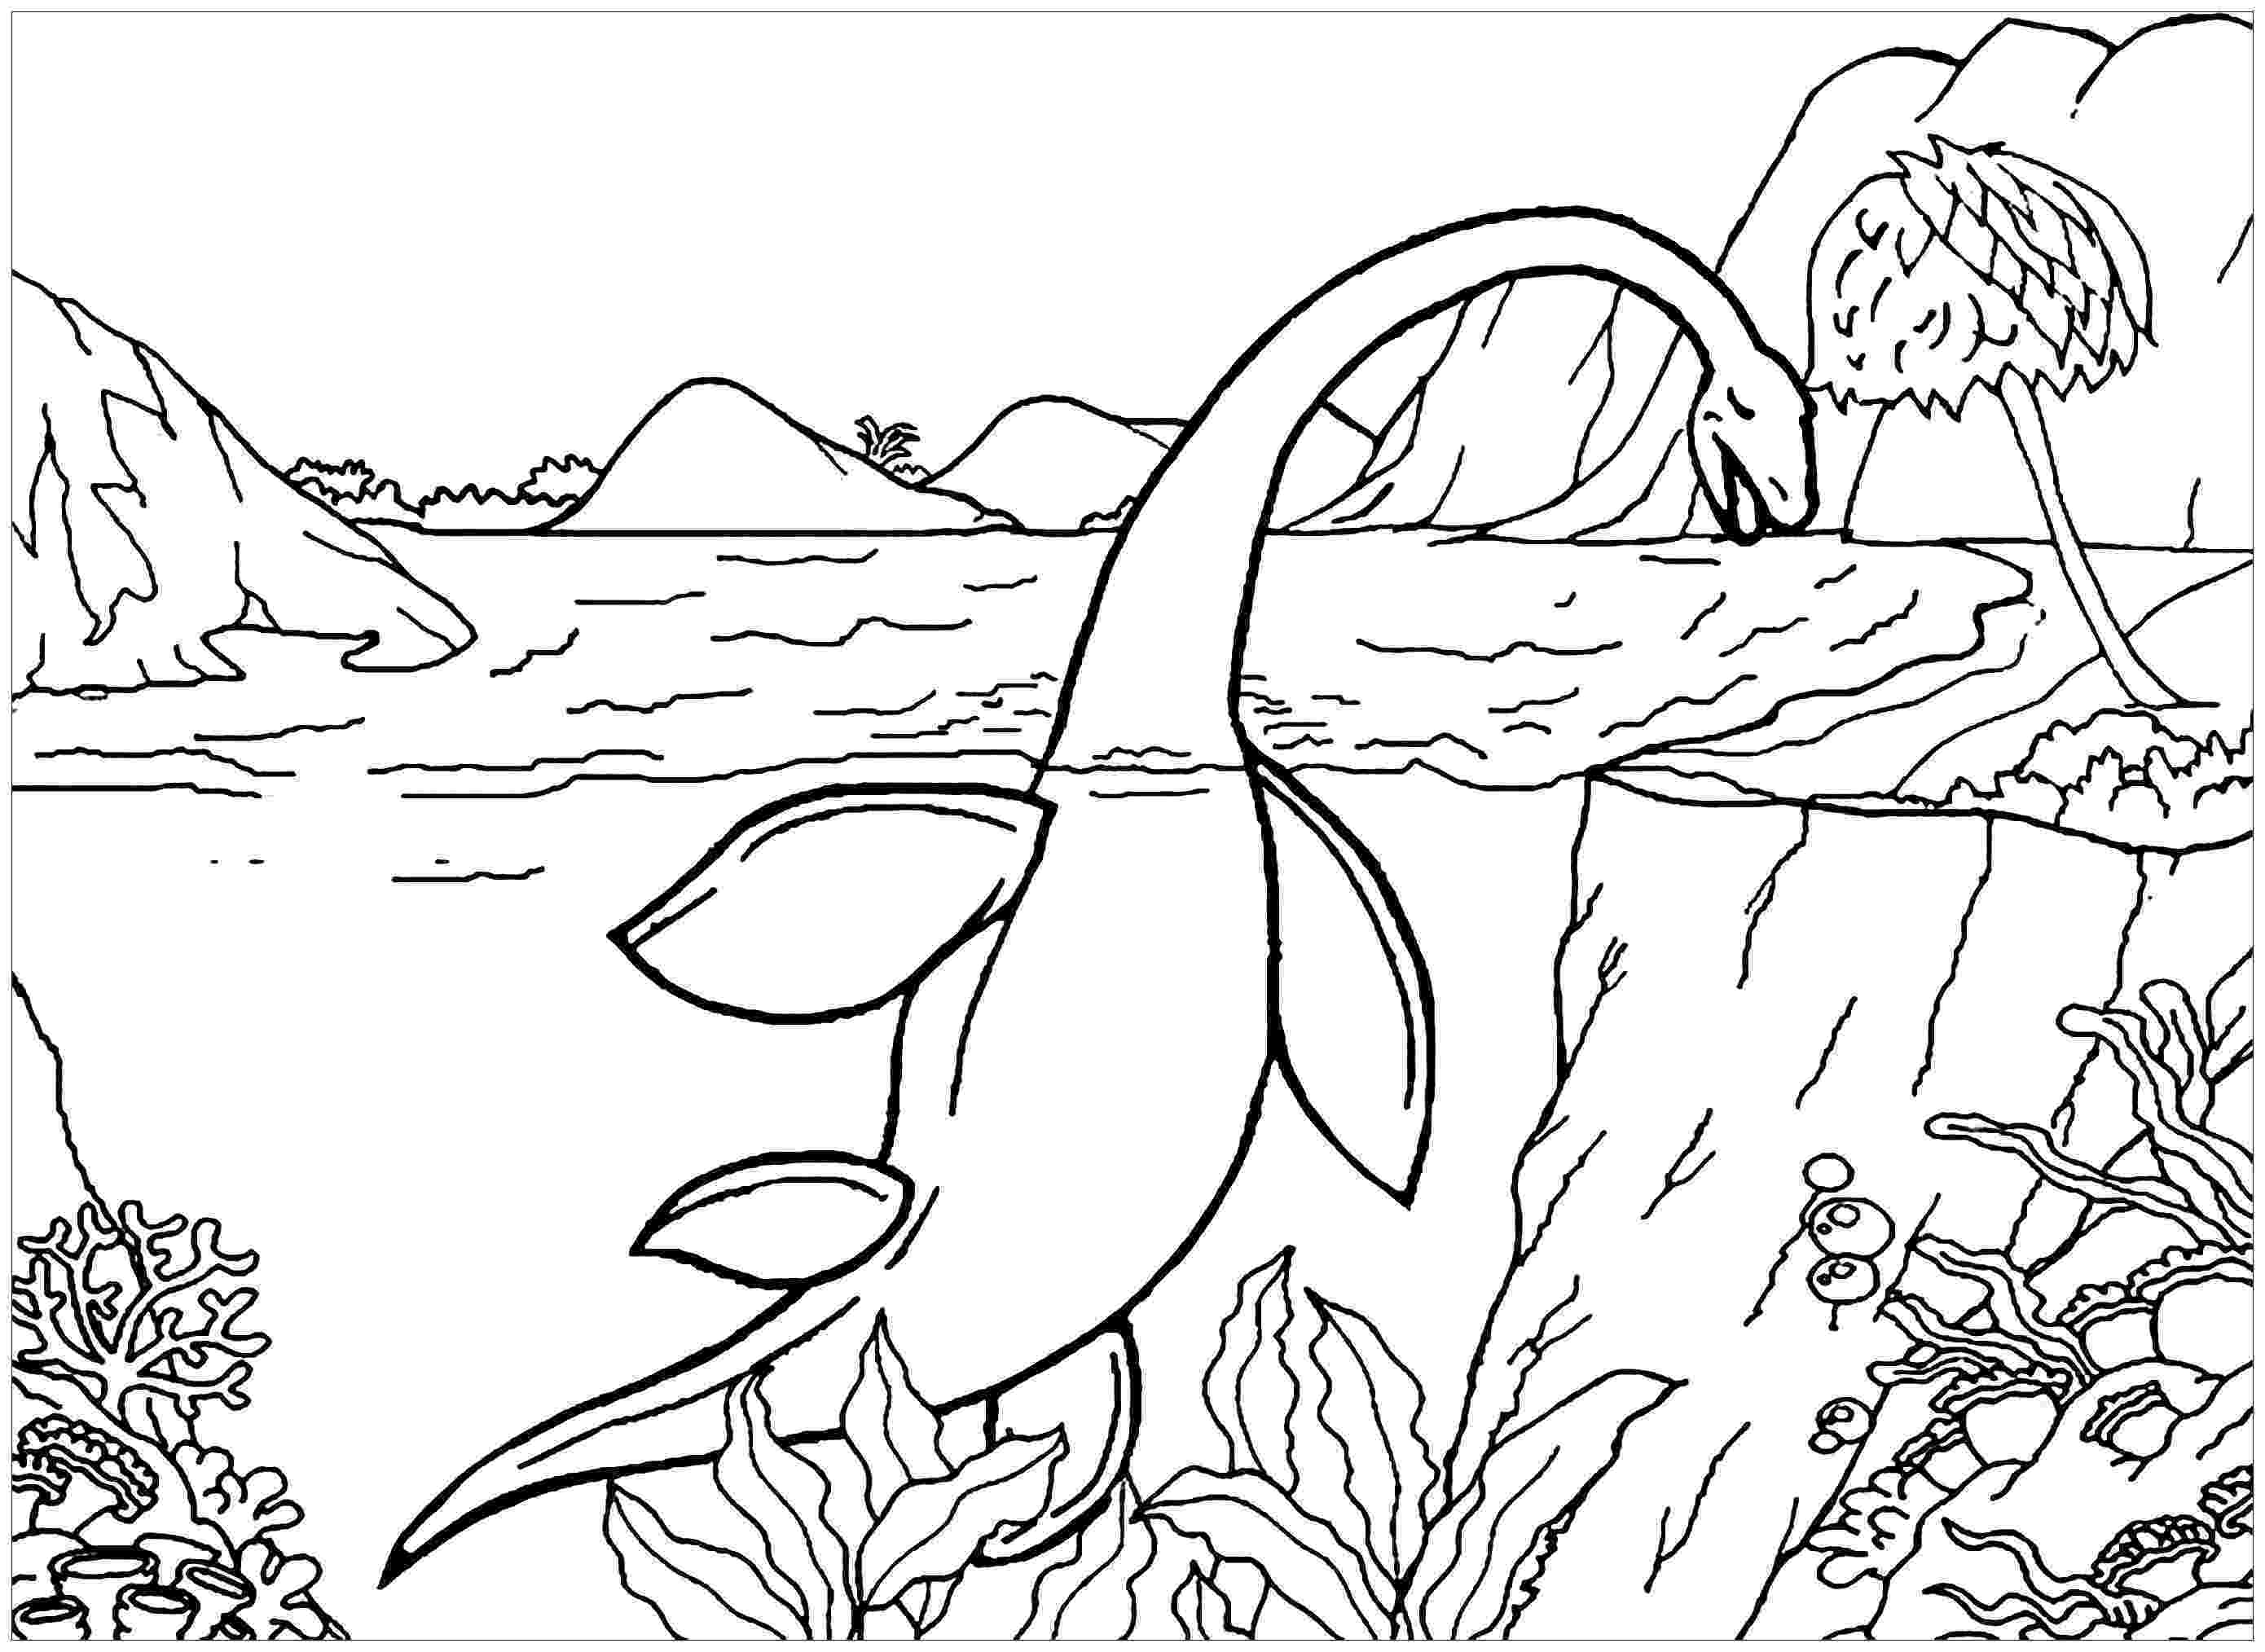 coloring pages of dinosaurs for preschoolers triceratops colouring topic dinosaurs coloring pages for pages of dinosaurs preschoolers coloring